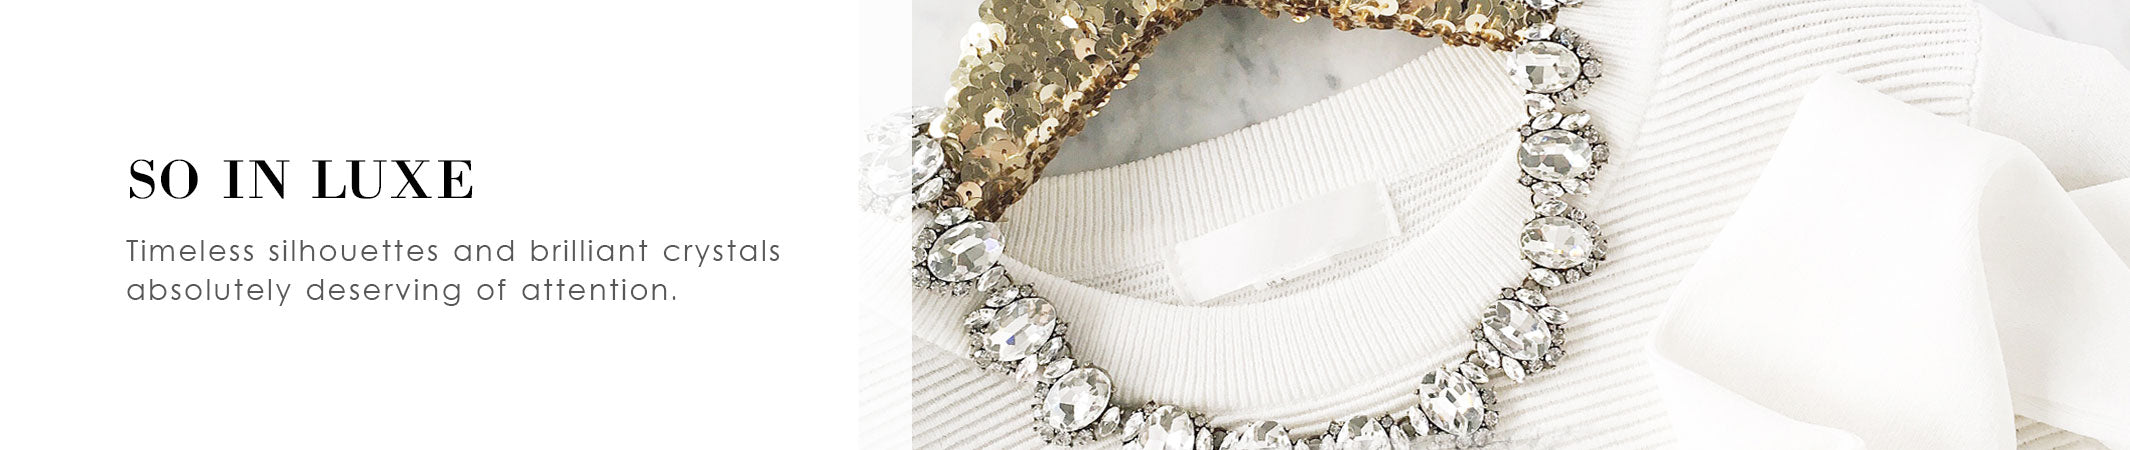 So in Luxe: Glamorous and Special Occasion Jewelry | olive + piper